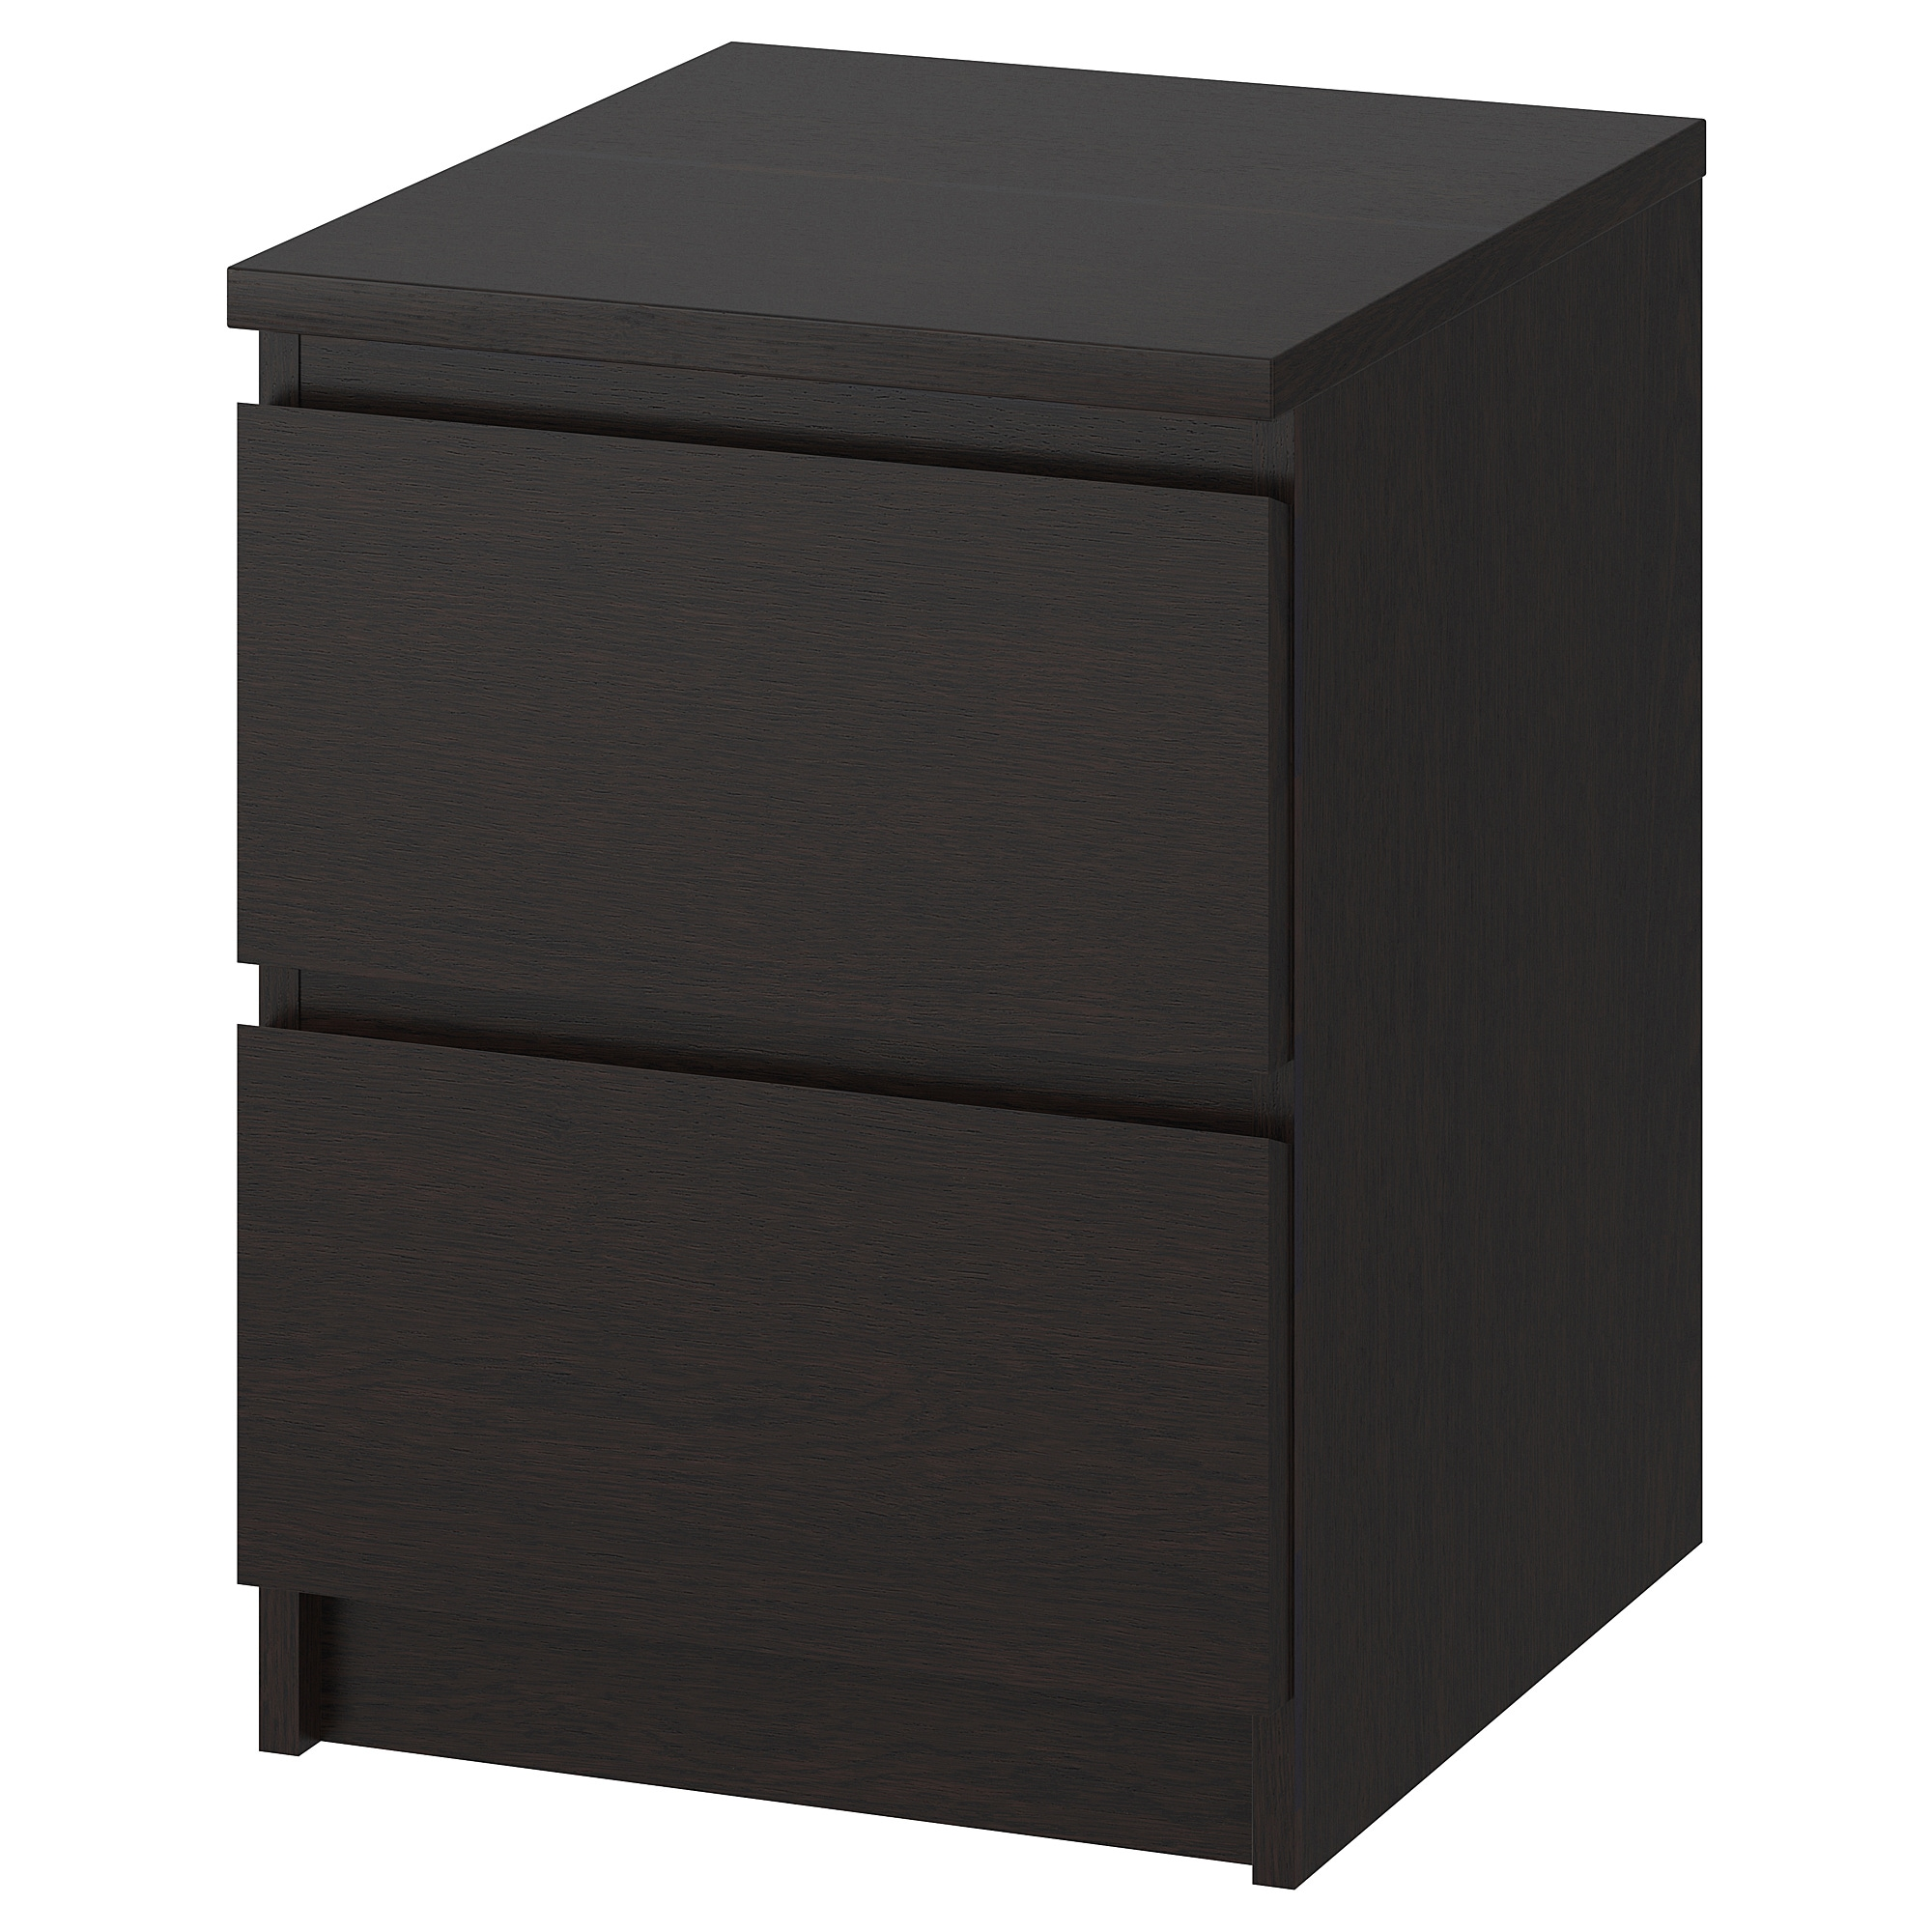 Ikea Malm Black Brown Part - 14: IKEA MALM Chest of 2 drawers